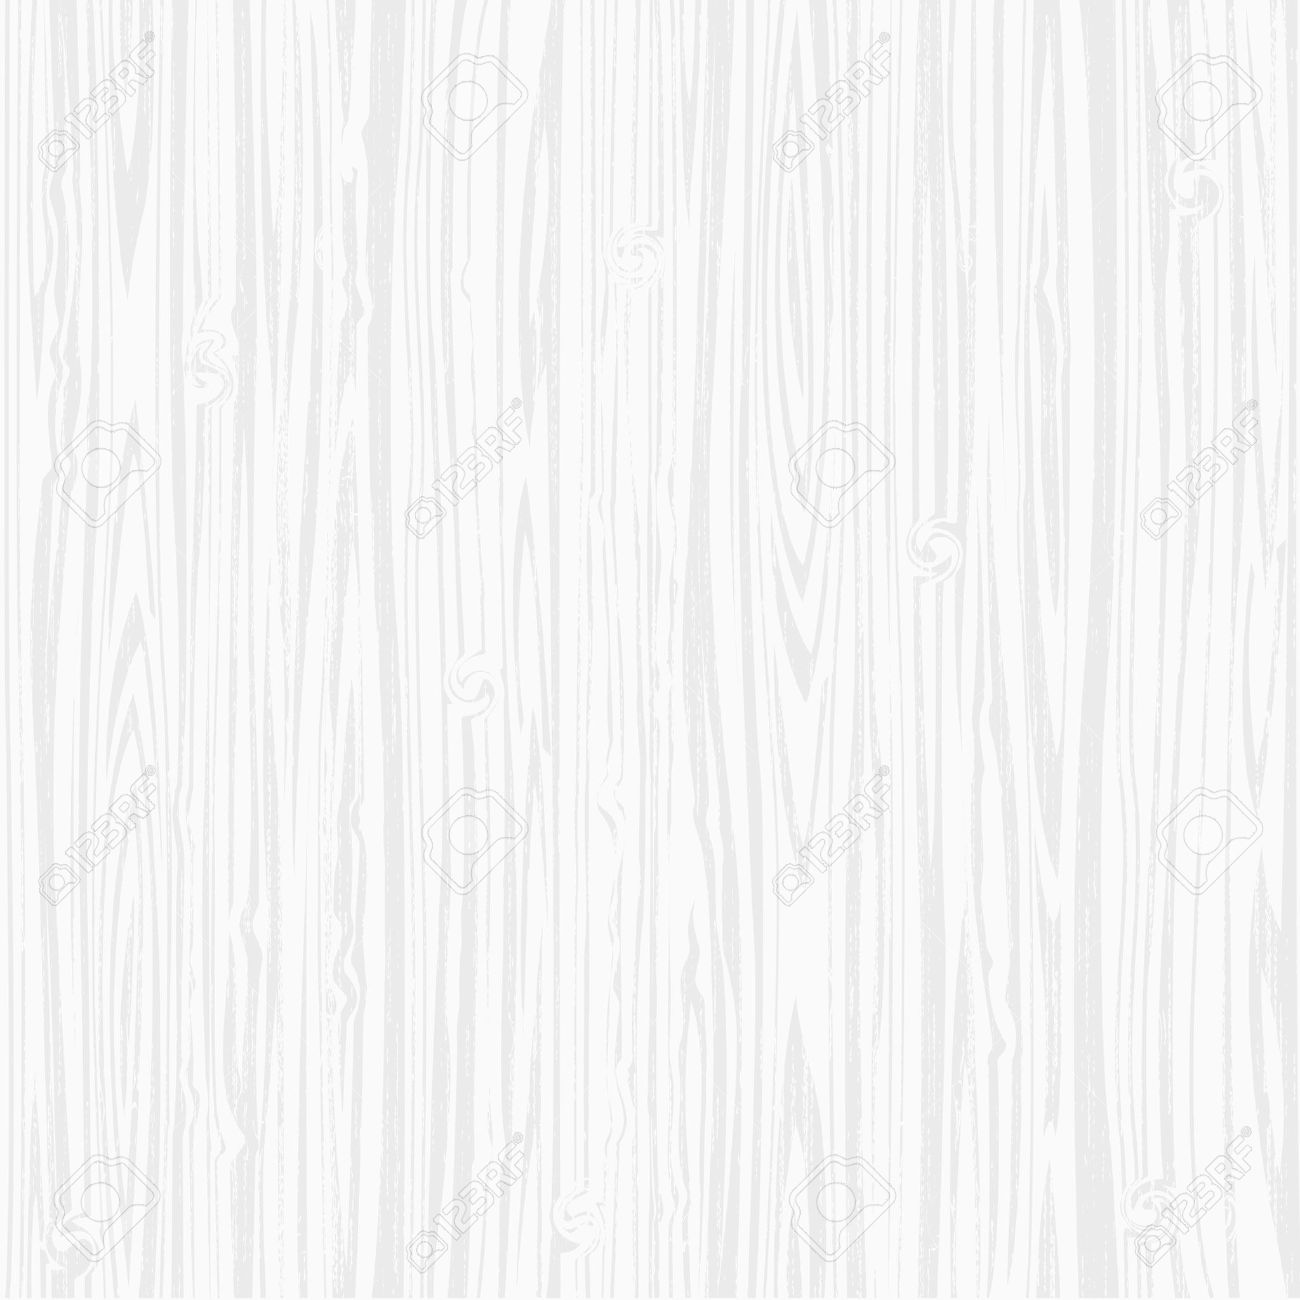 Seamless White Wood Texture Seamless Seamless Wood Texture U2014